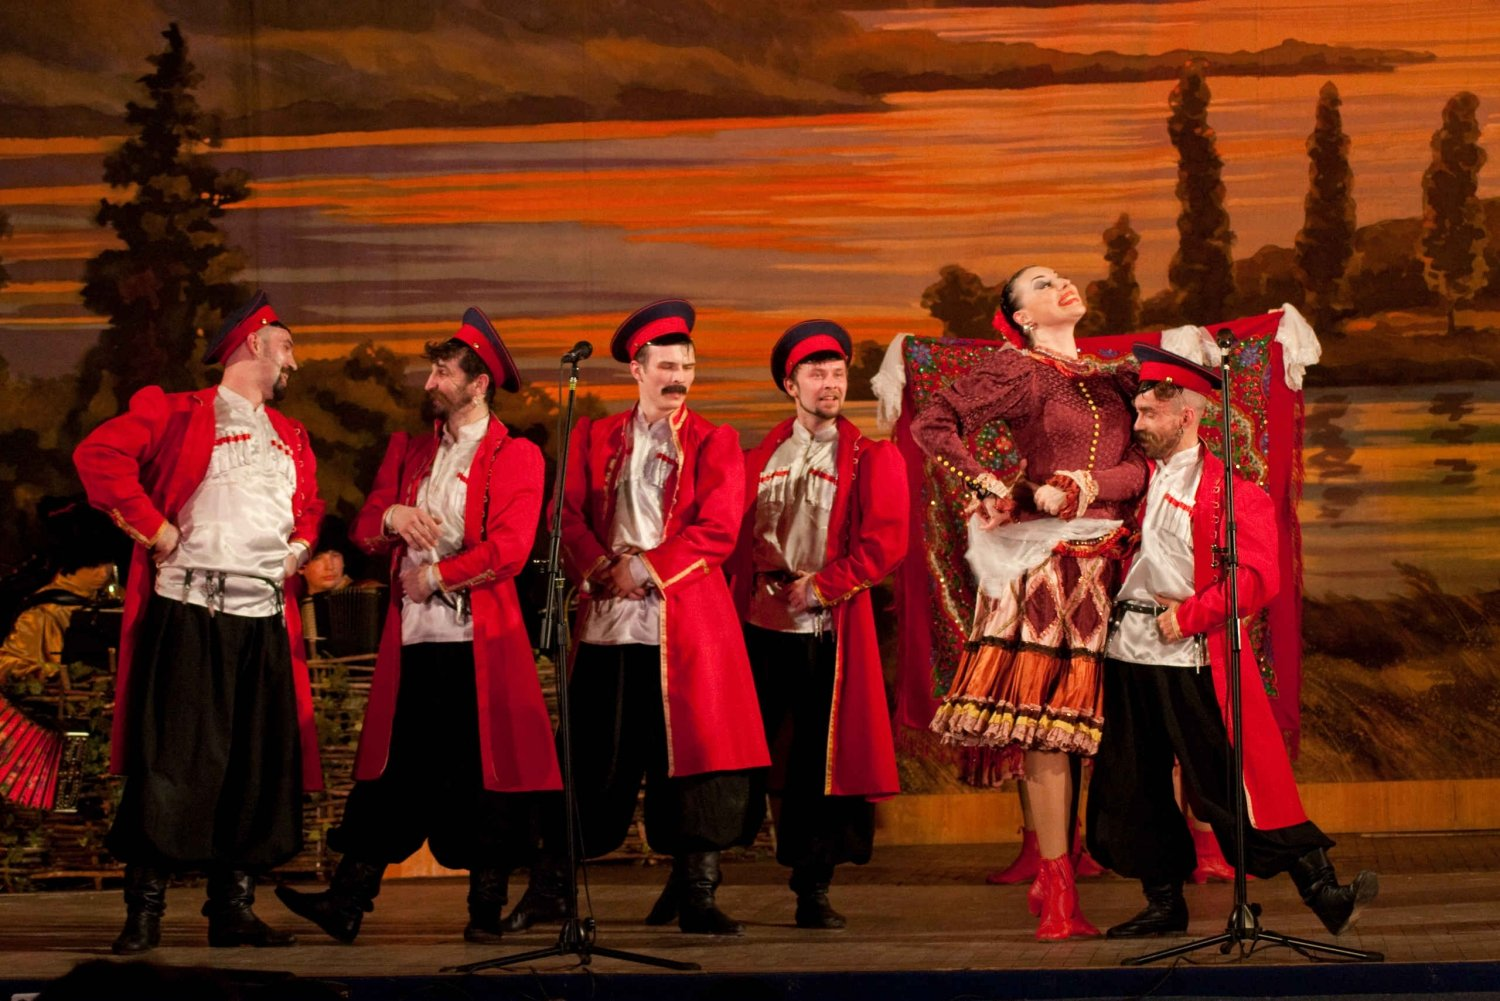 St. Petersburg: Folklore Show